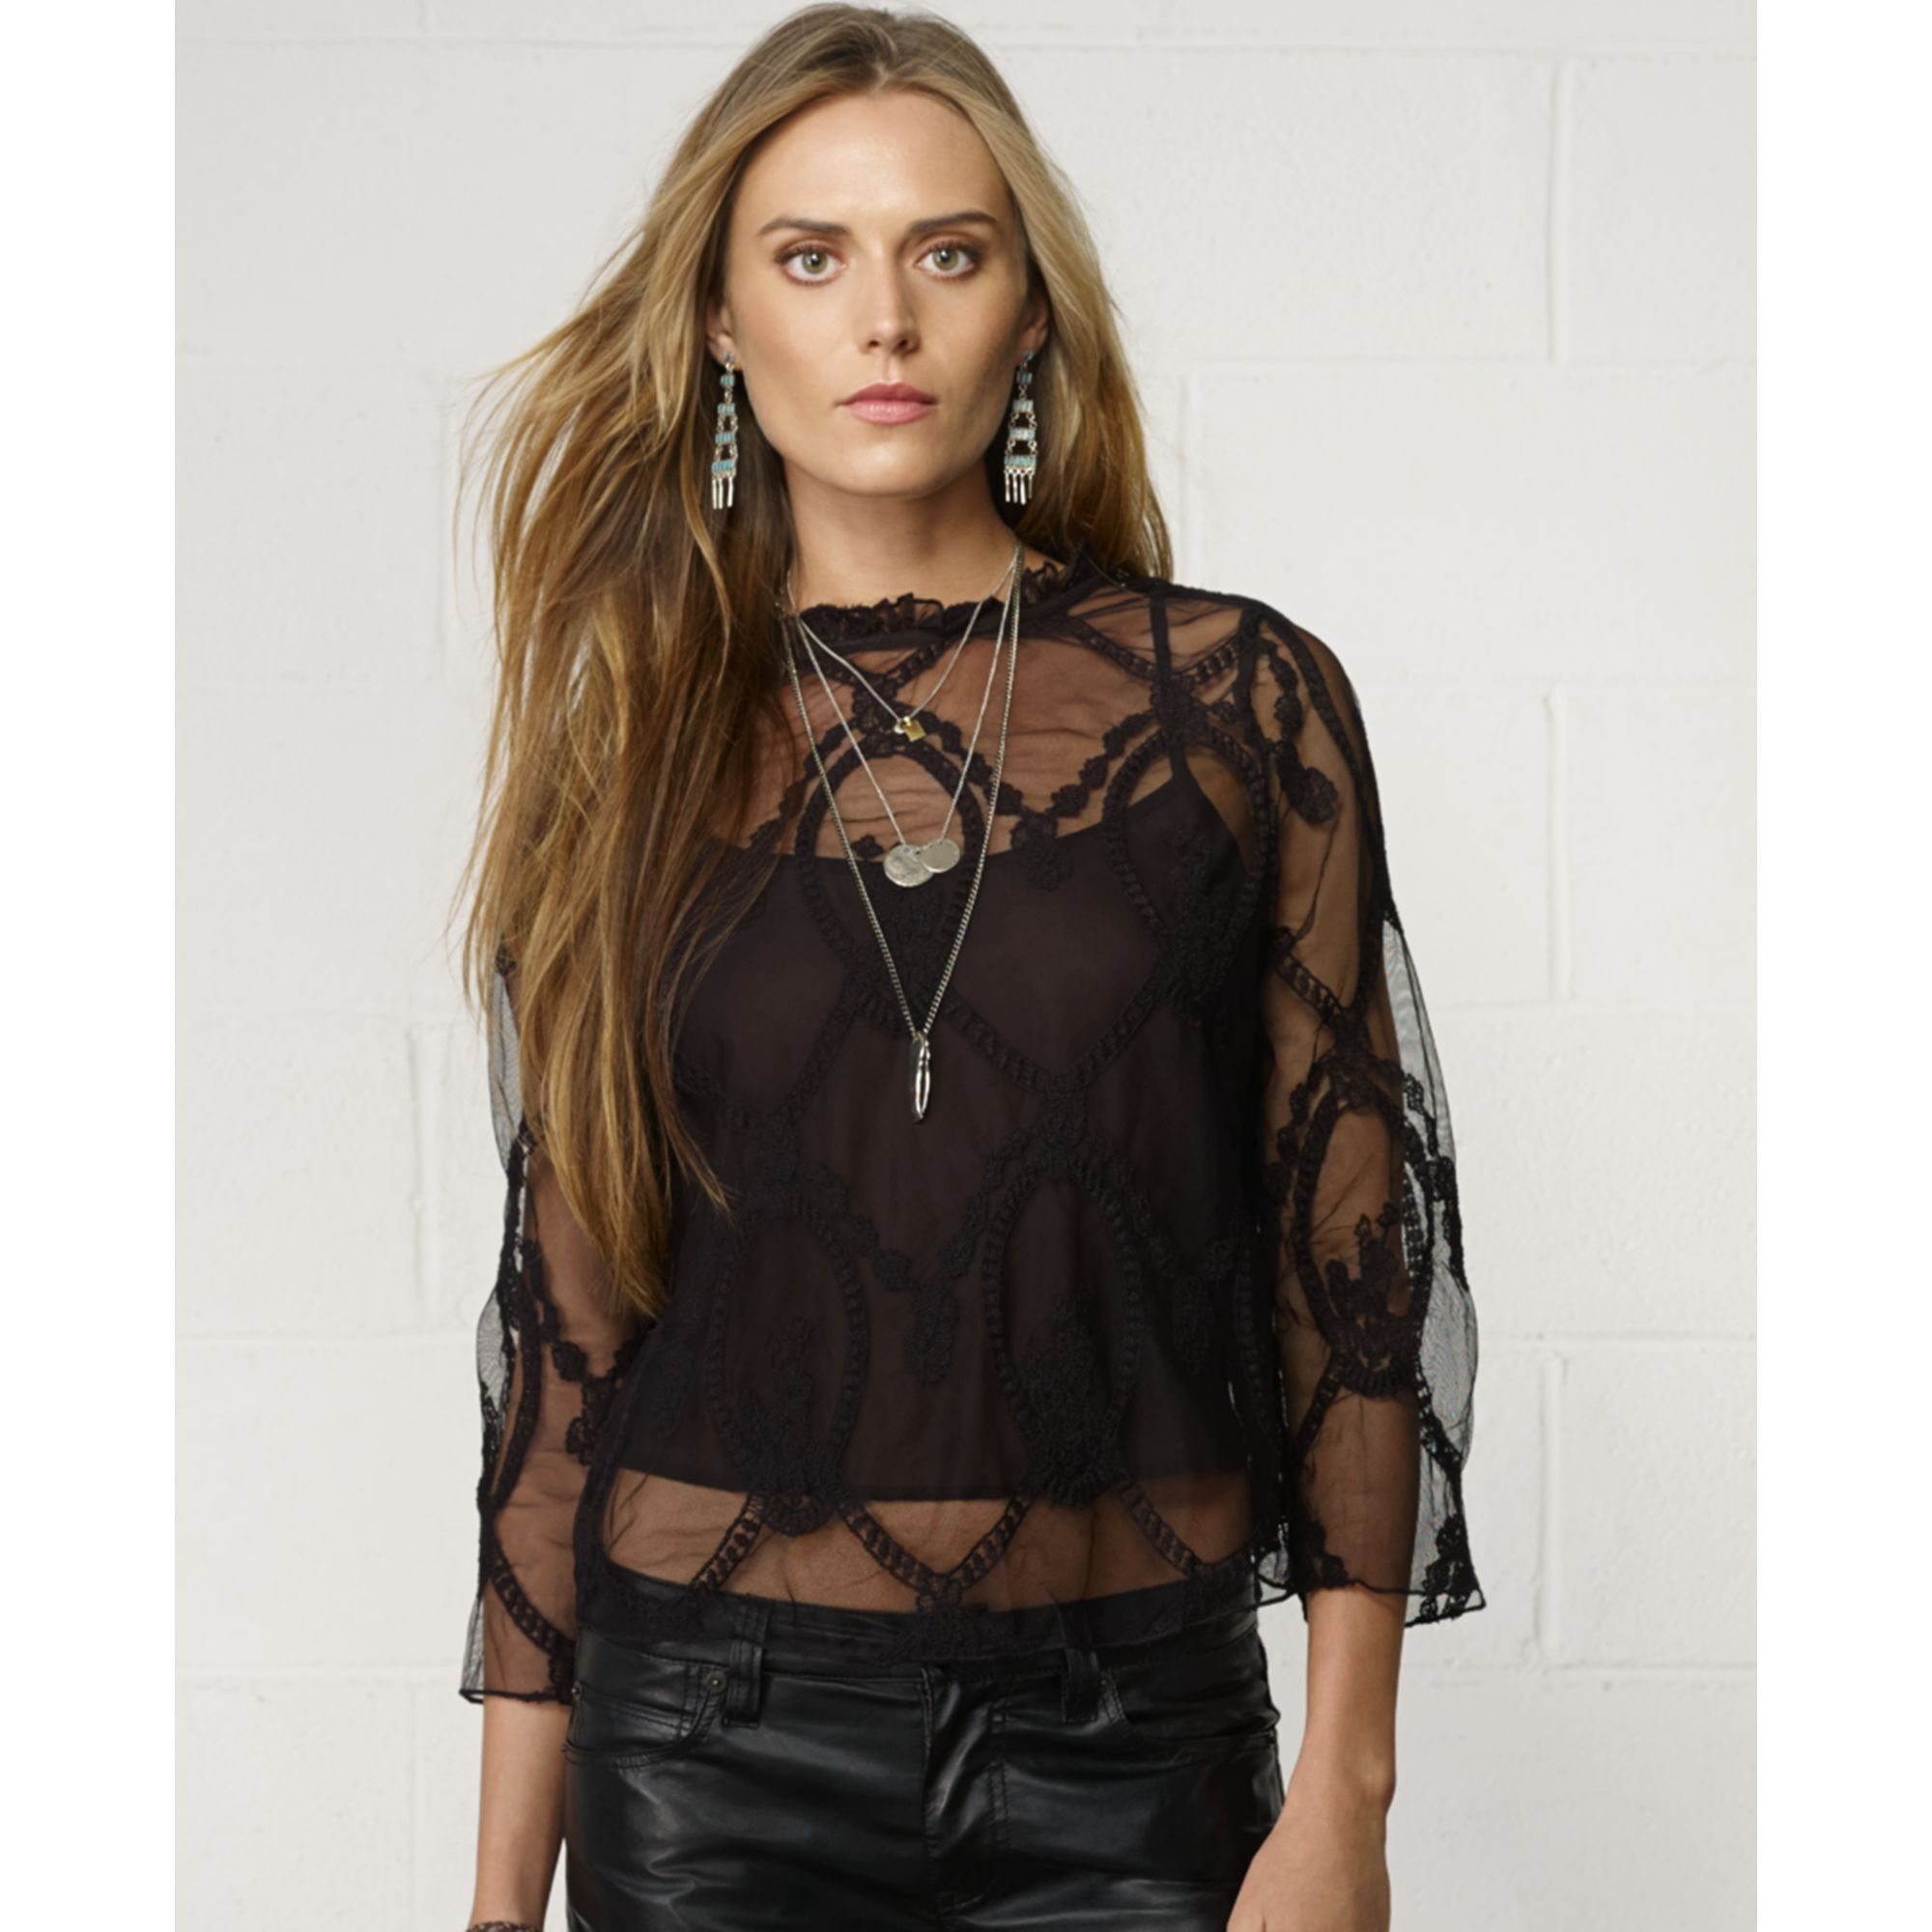 b37576b9 Denim & supply ralph lauren Longsleeve Embroidered Mesh Blouse in Black |  Lyst